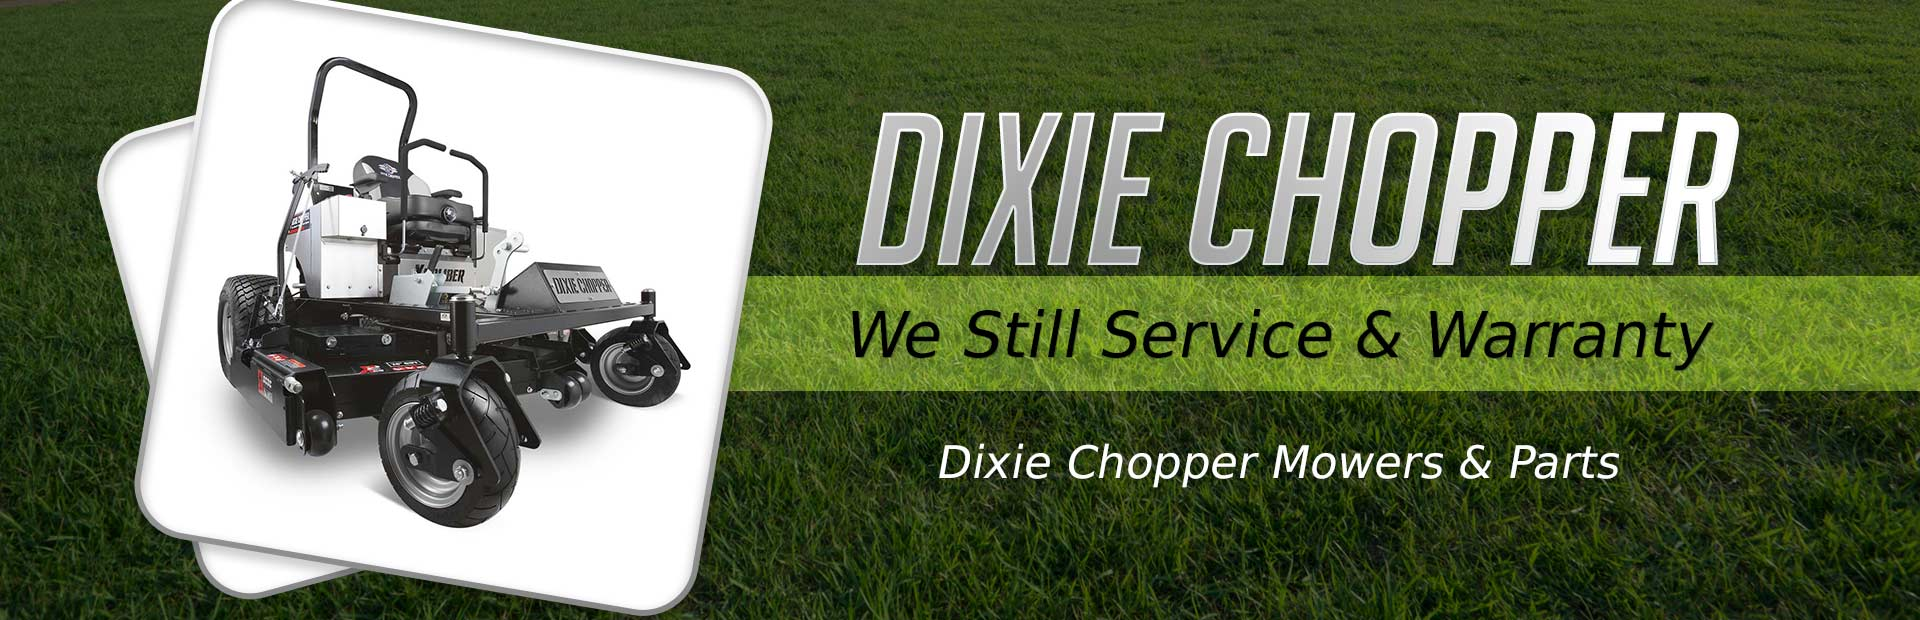 Dixie Chopper service & warranty: Click here to see a list of available services!